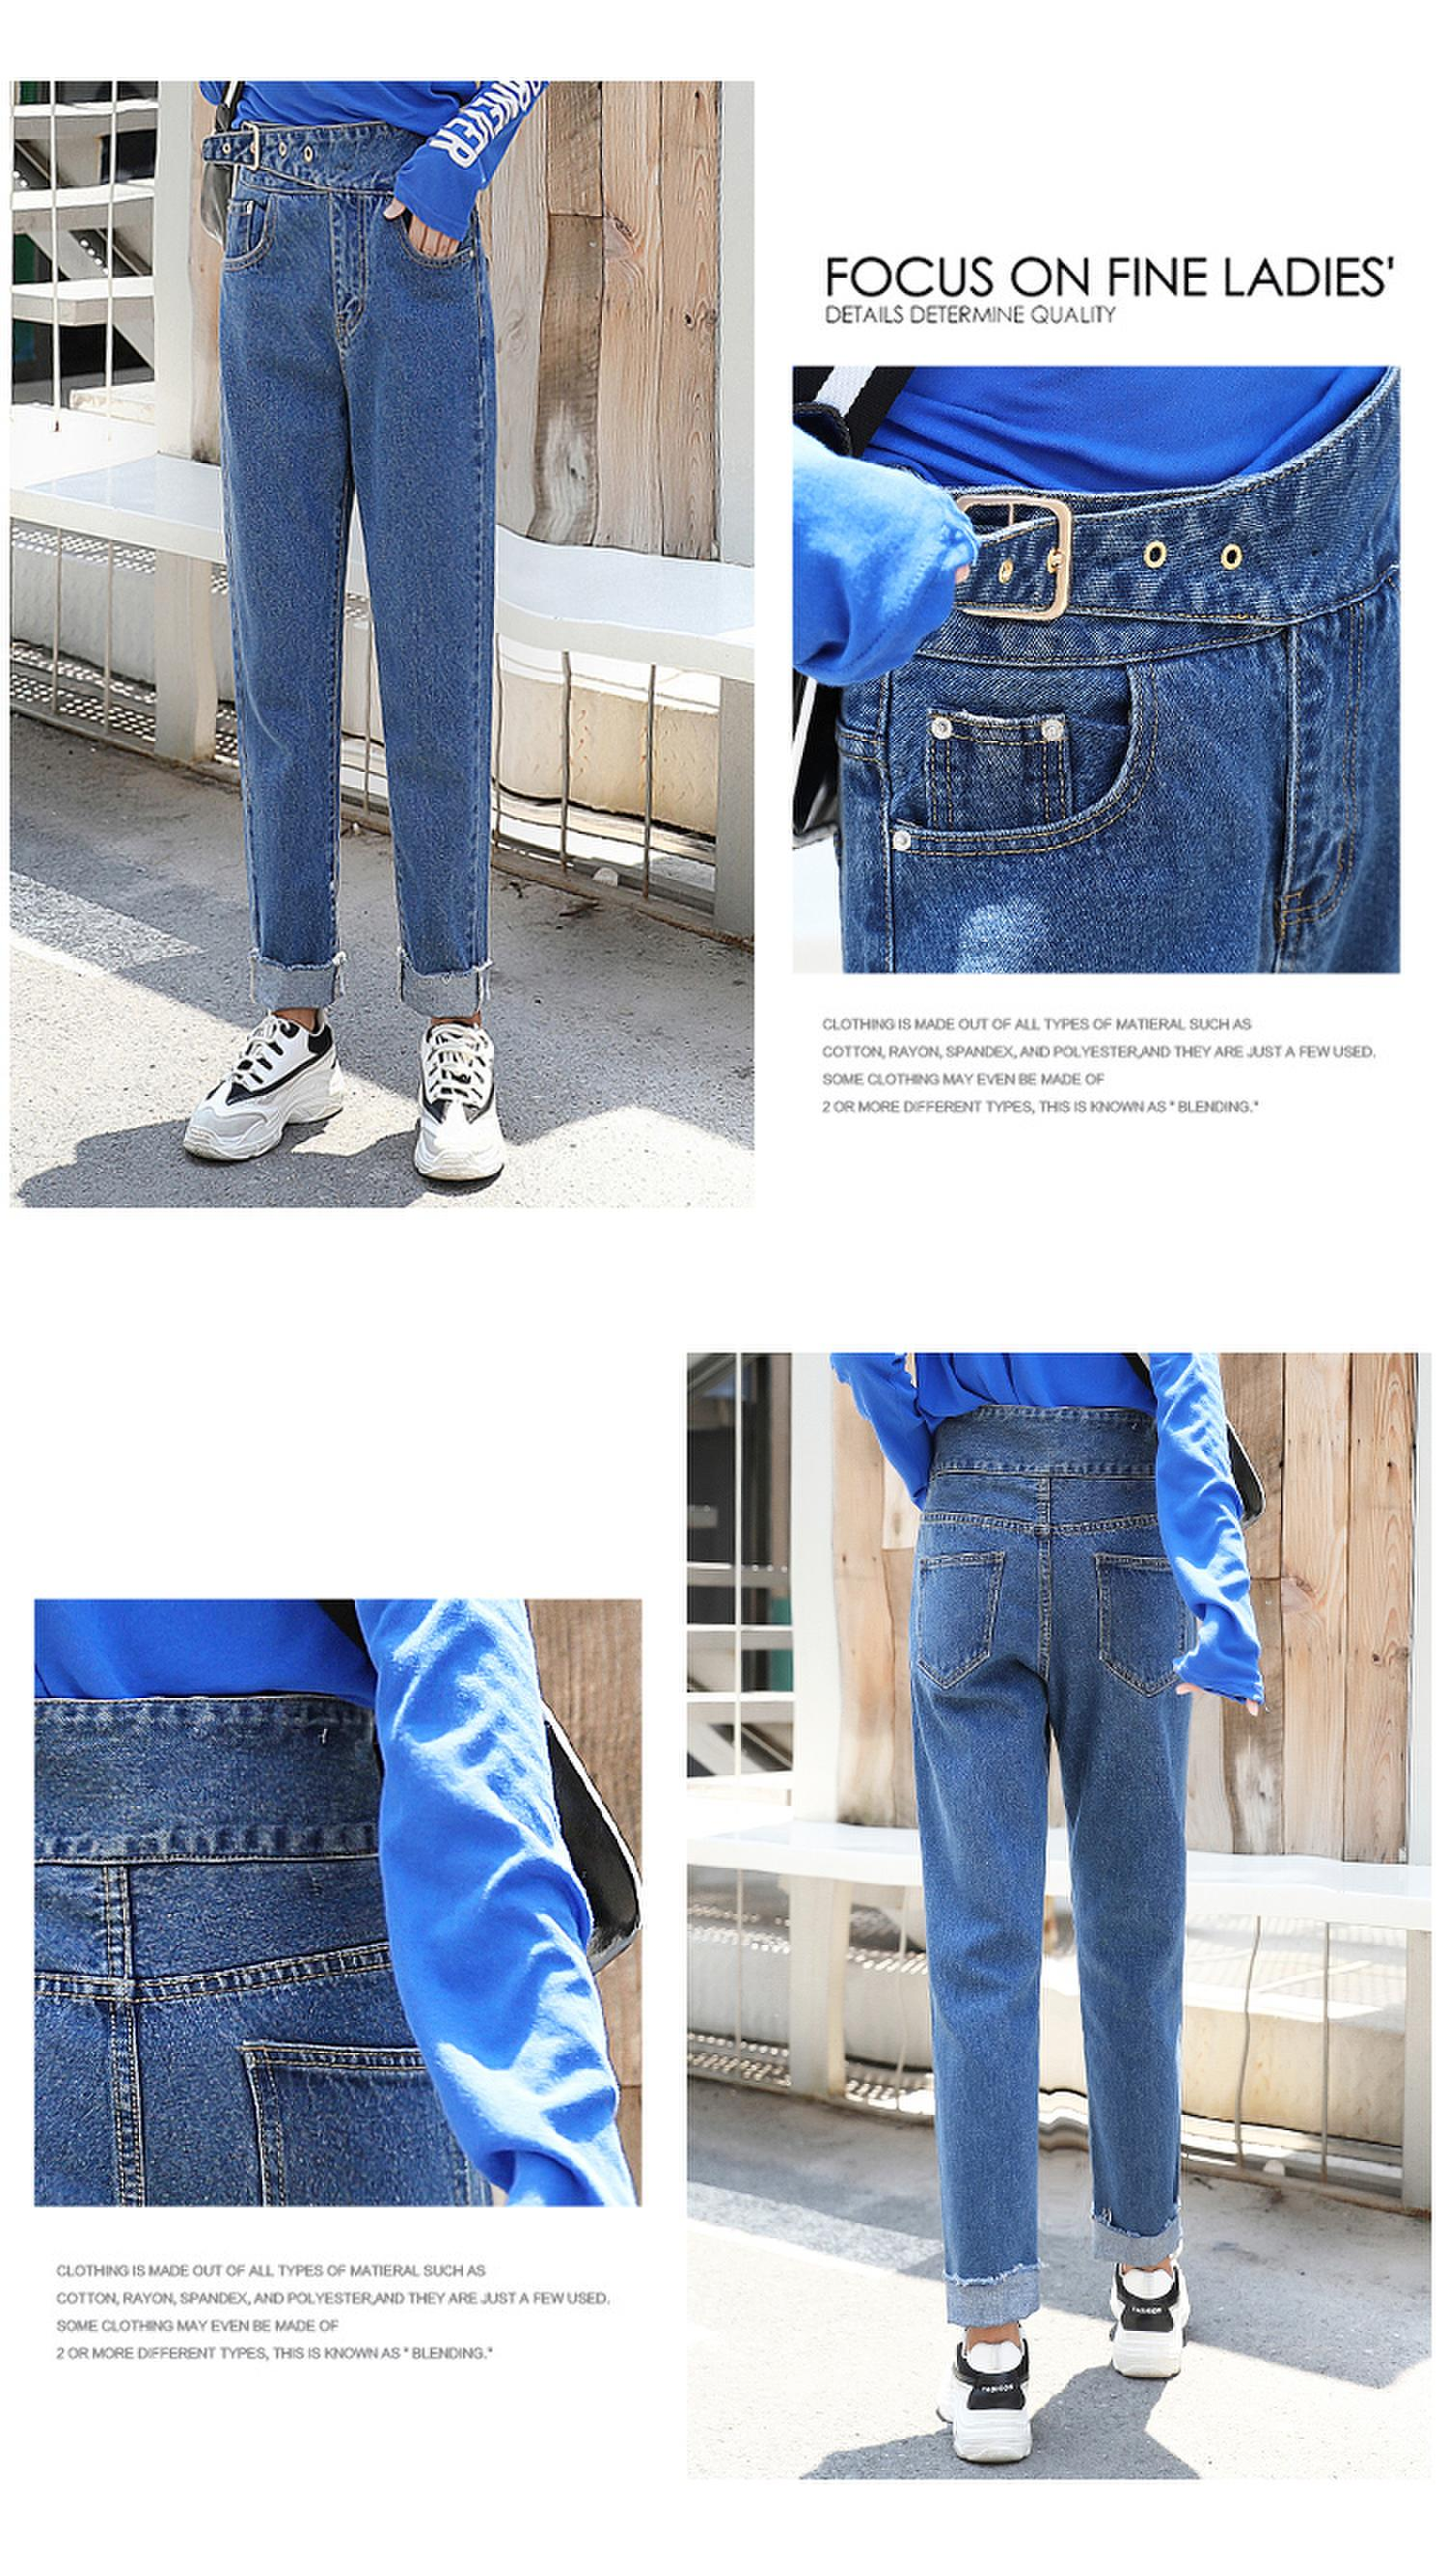 Bottoms Jeans Guuzyuviz Autumn Winter Plus Size Jeans Woman Vintage Casual Print Hole Ripped Washed Cotton Denim High Wasit Pants Mujer Great Varieties